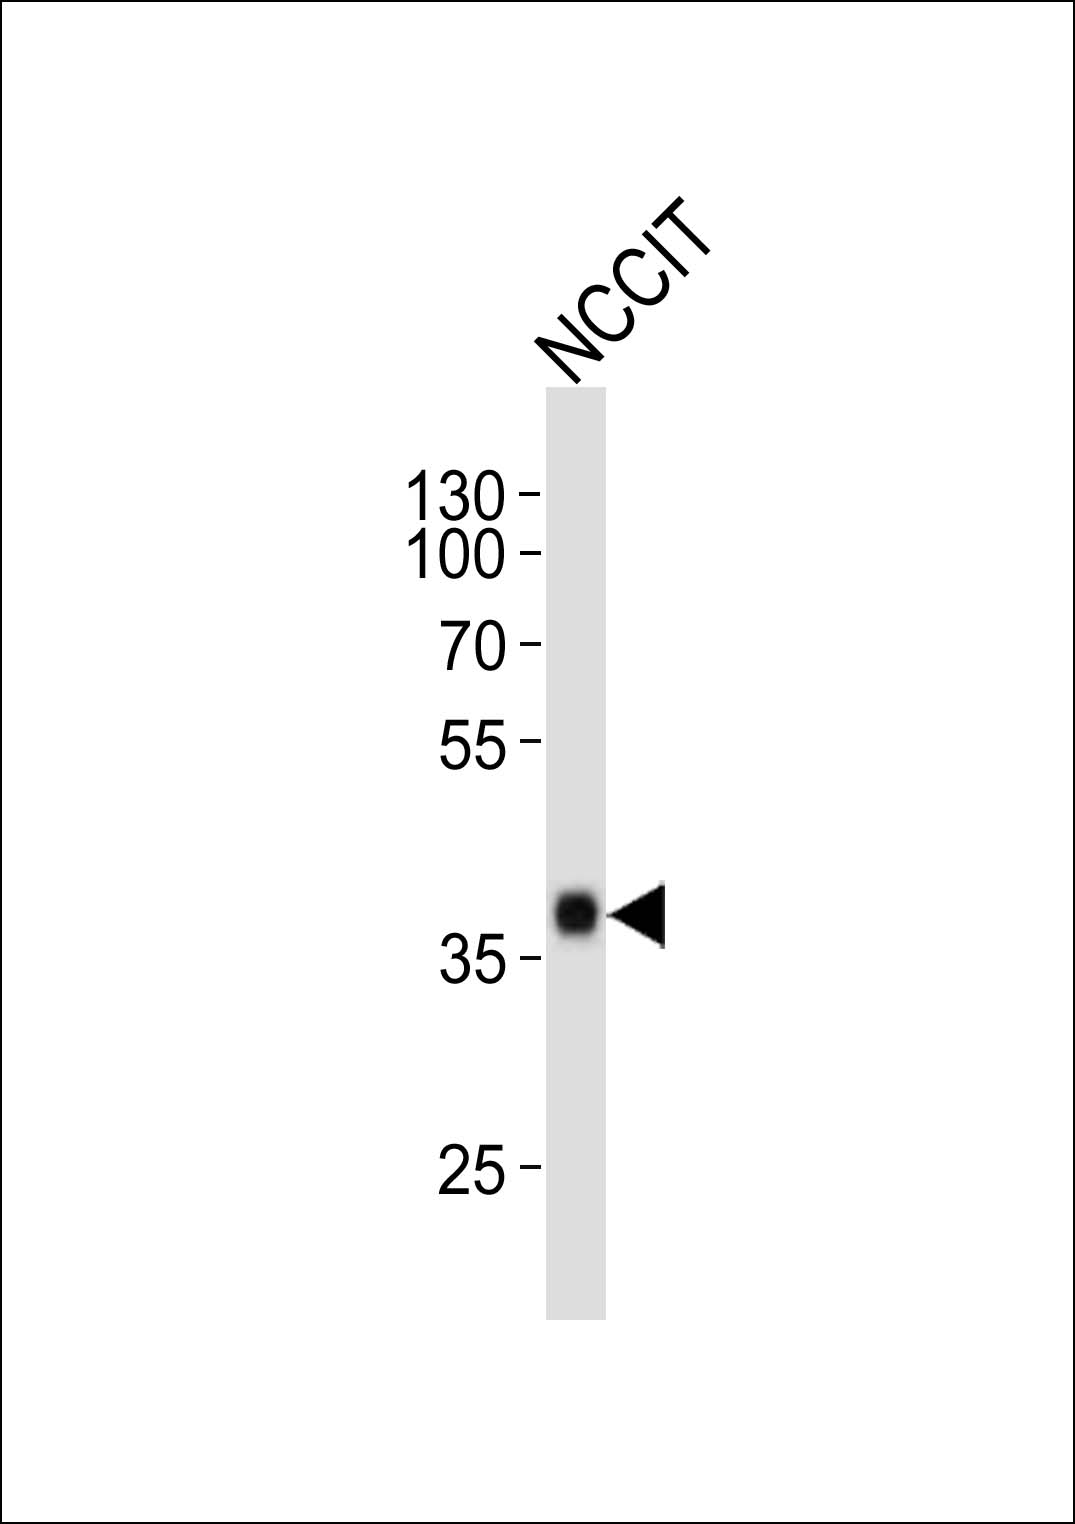 NCCIT cell lysate probed with bsm-51142M SOX2 (7C4) Monoclonal Antibody at 1:1000 dilution and 4\u2103 overnight incubation, followed by secondary antibody incubation for 60min at room temperature.